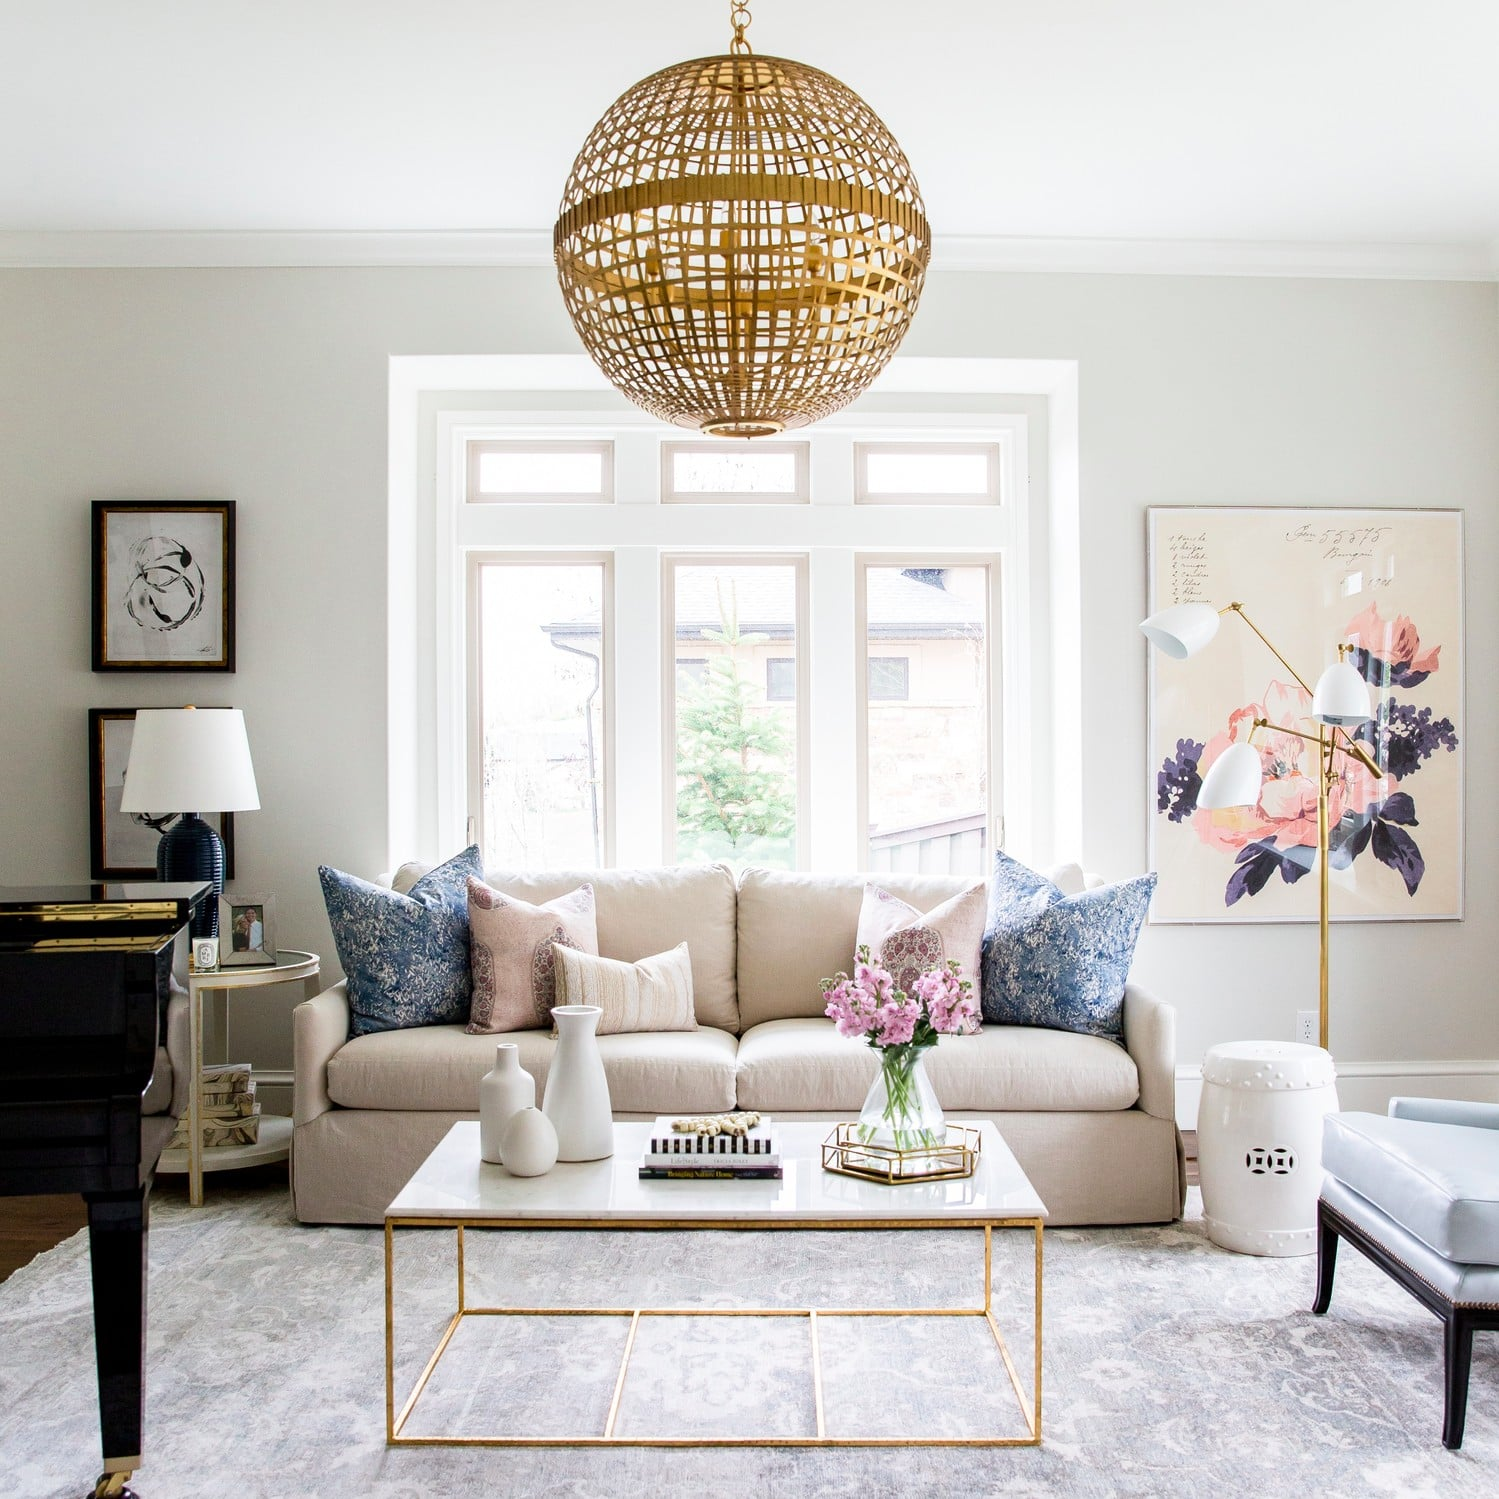 Decorating first apartment decorating ideas | popsugar home